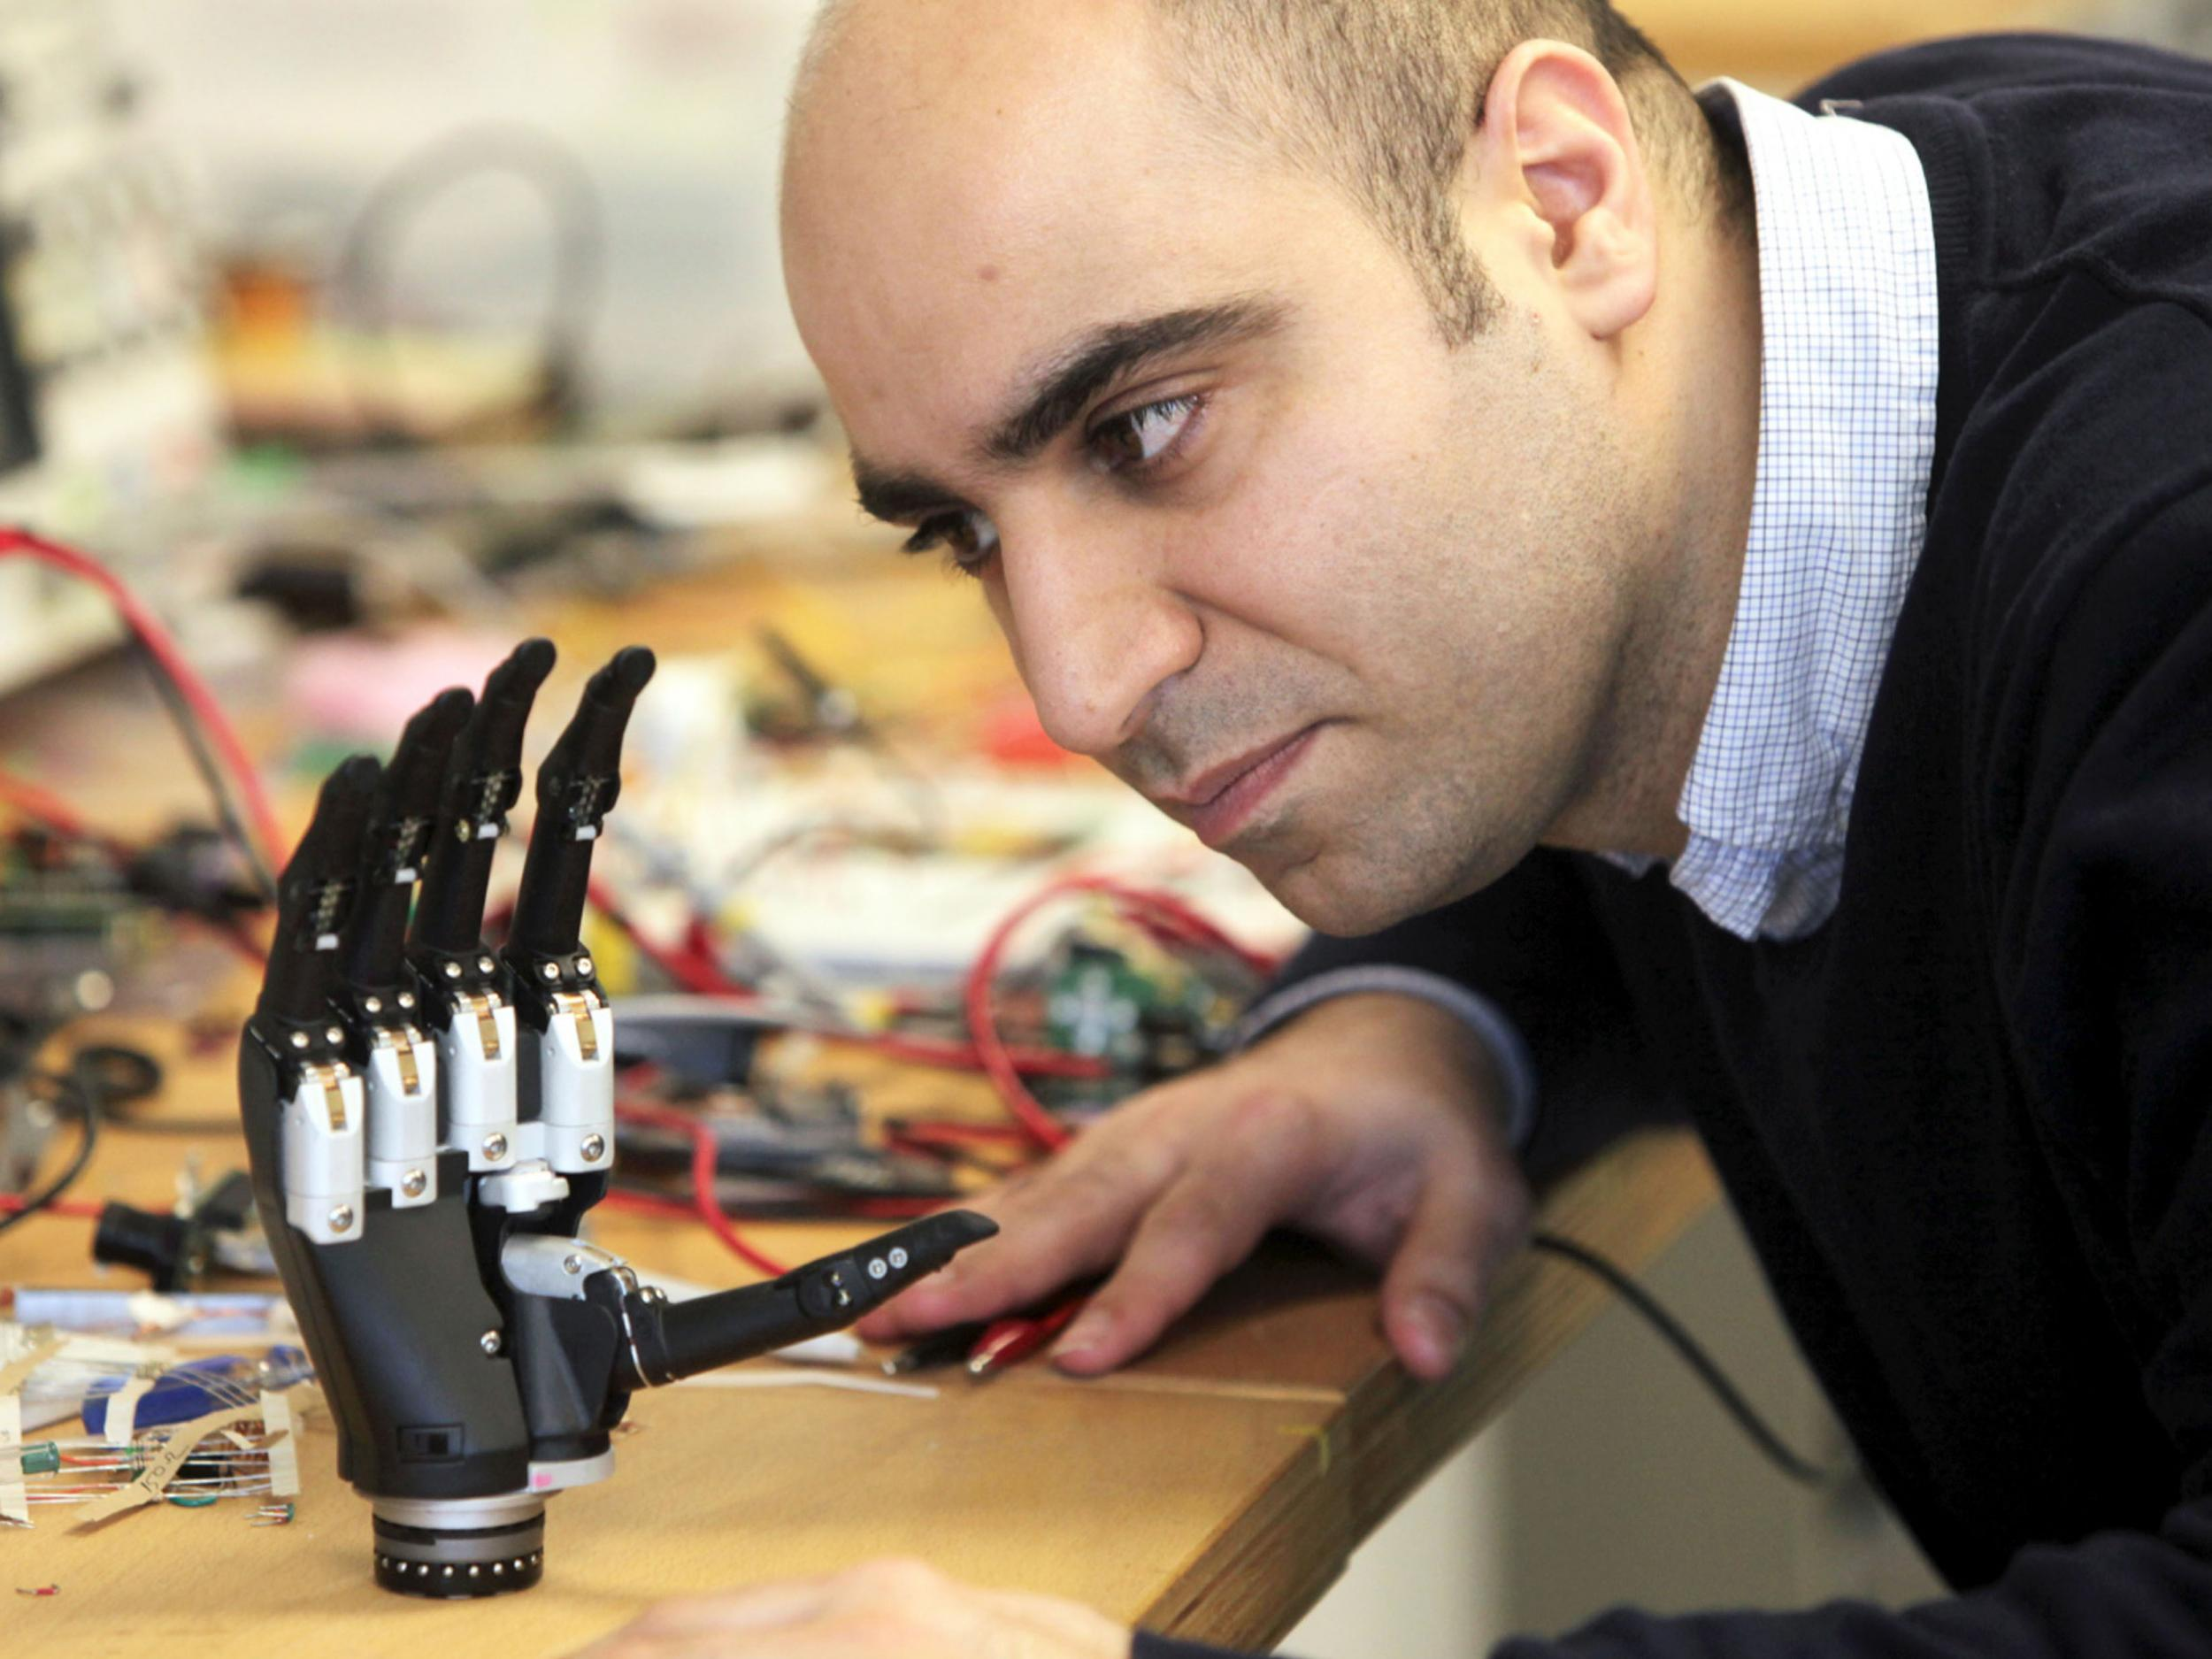 Scientists unveil revolutionary bionic hand that sees objects scientists unveil revolutionary bionic hand that sees objects and triggers grip within milliseconds the independent fandeluxe PDF